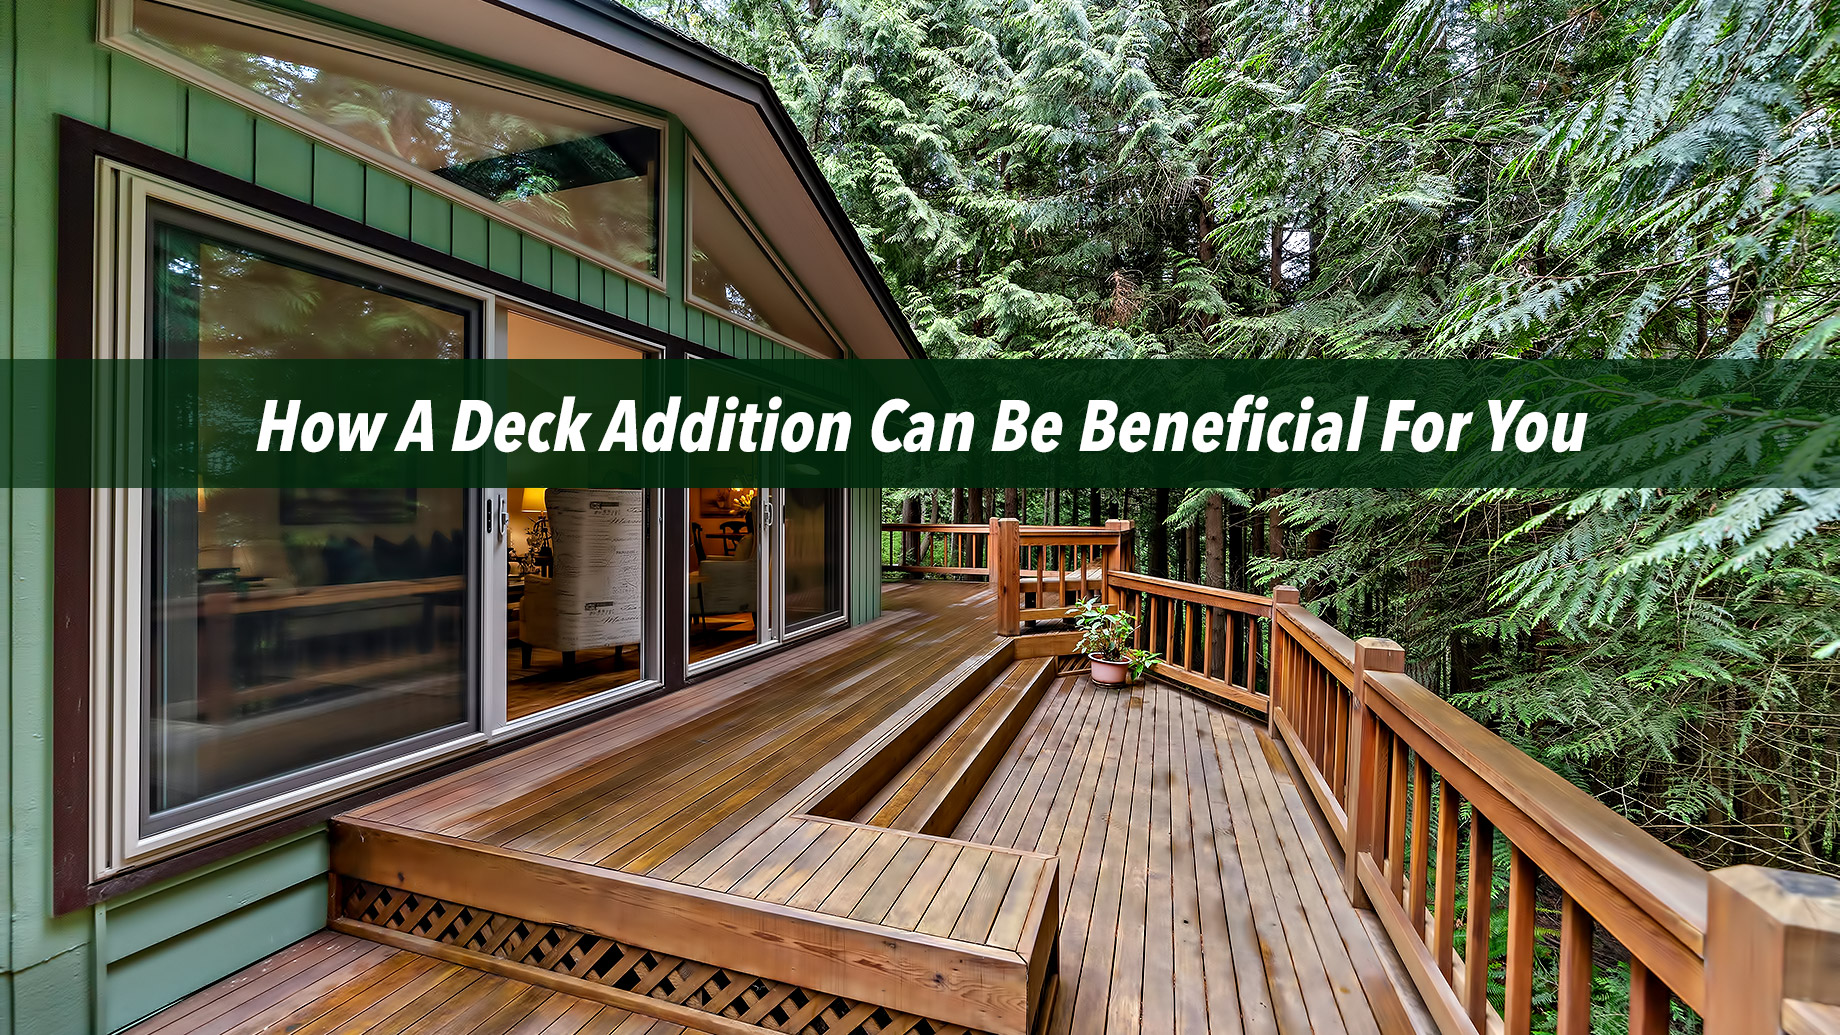 How A Deck Addition Can Be Beneficial For You